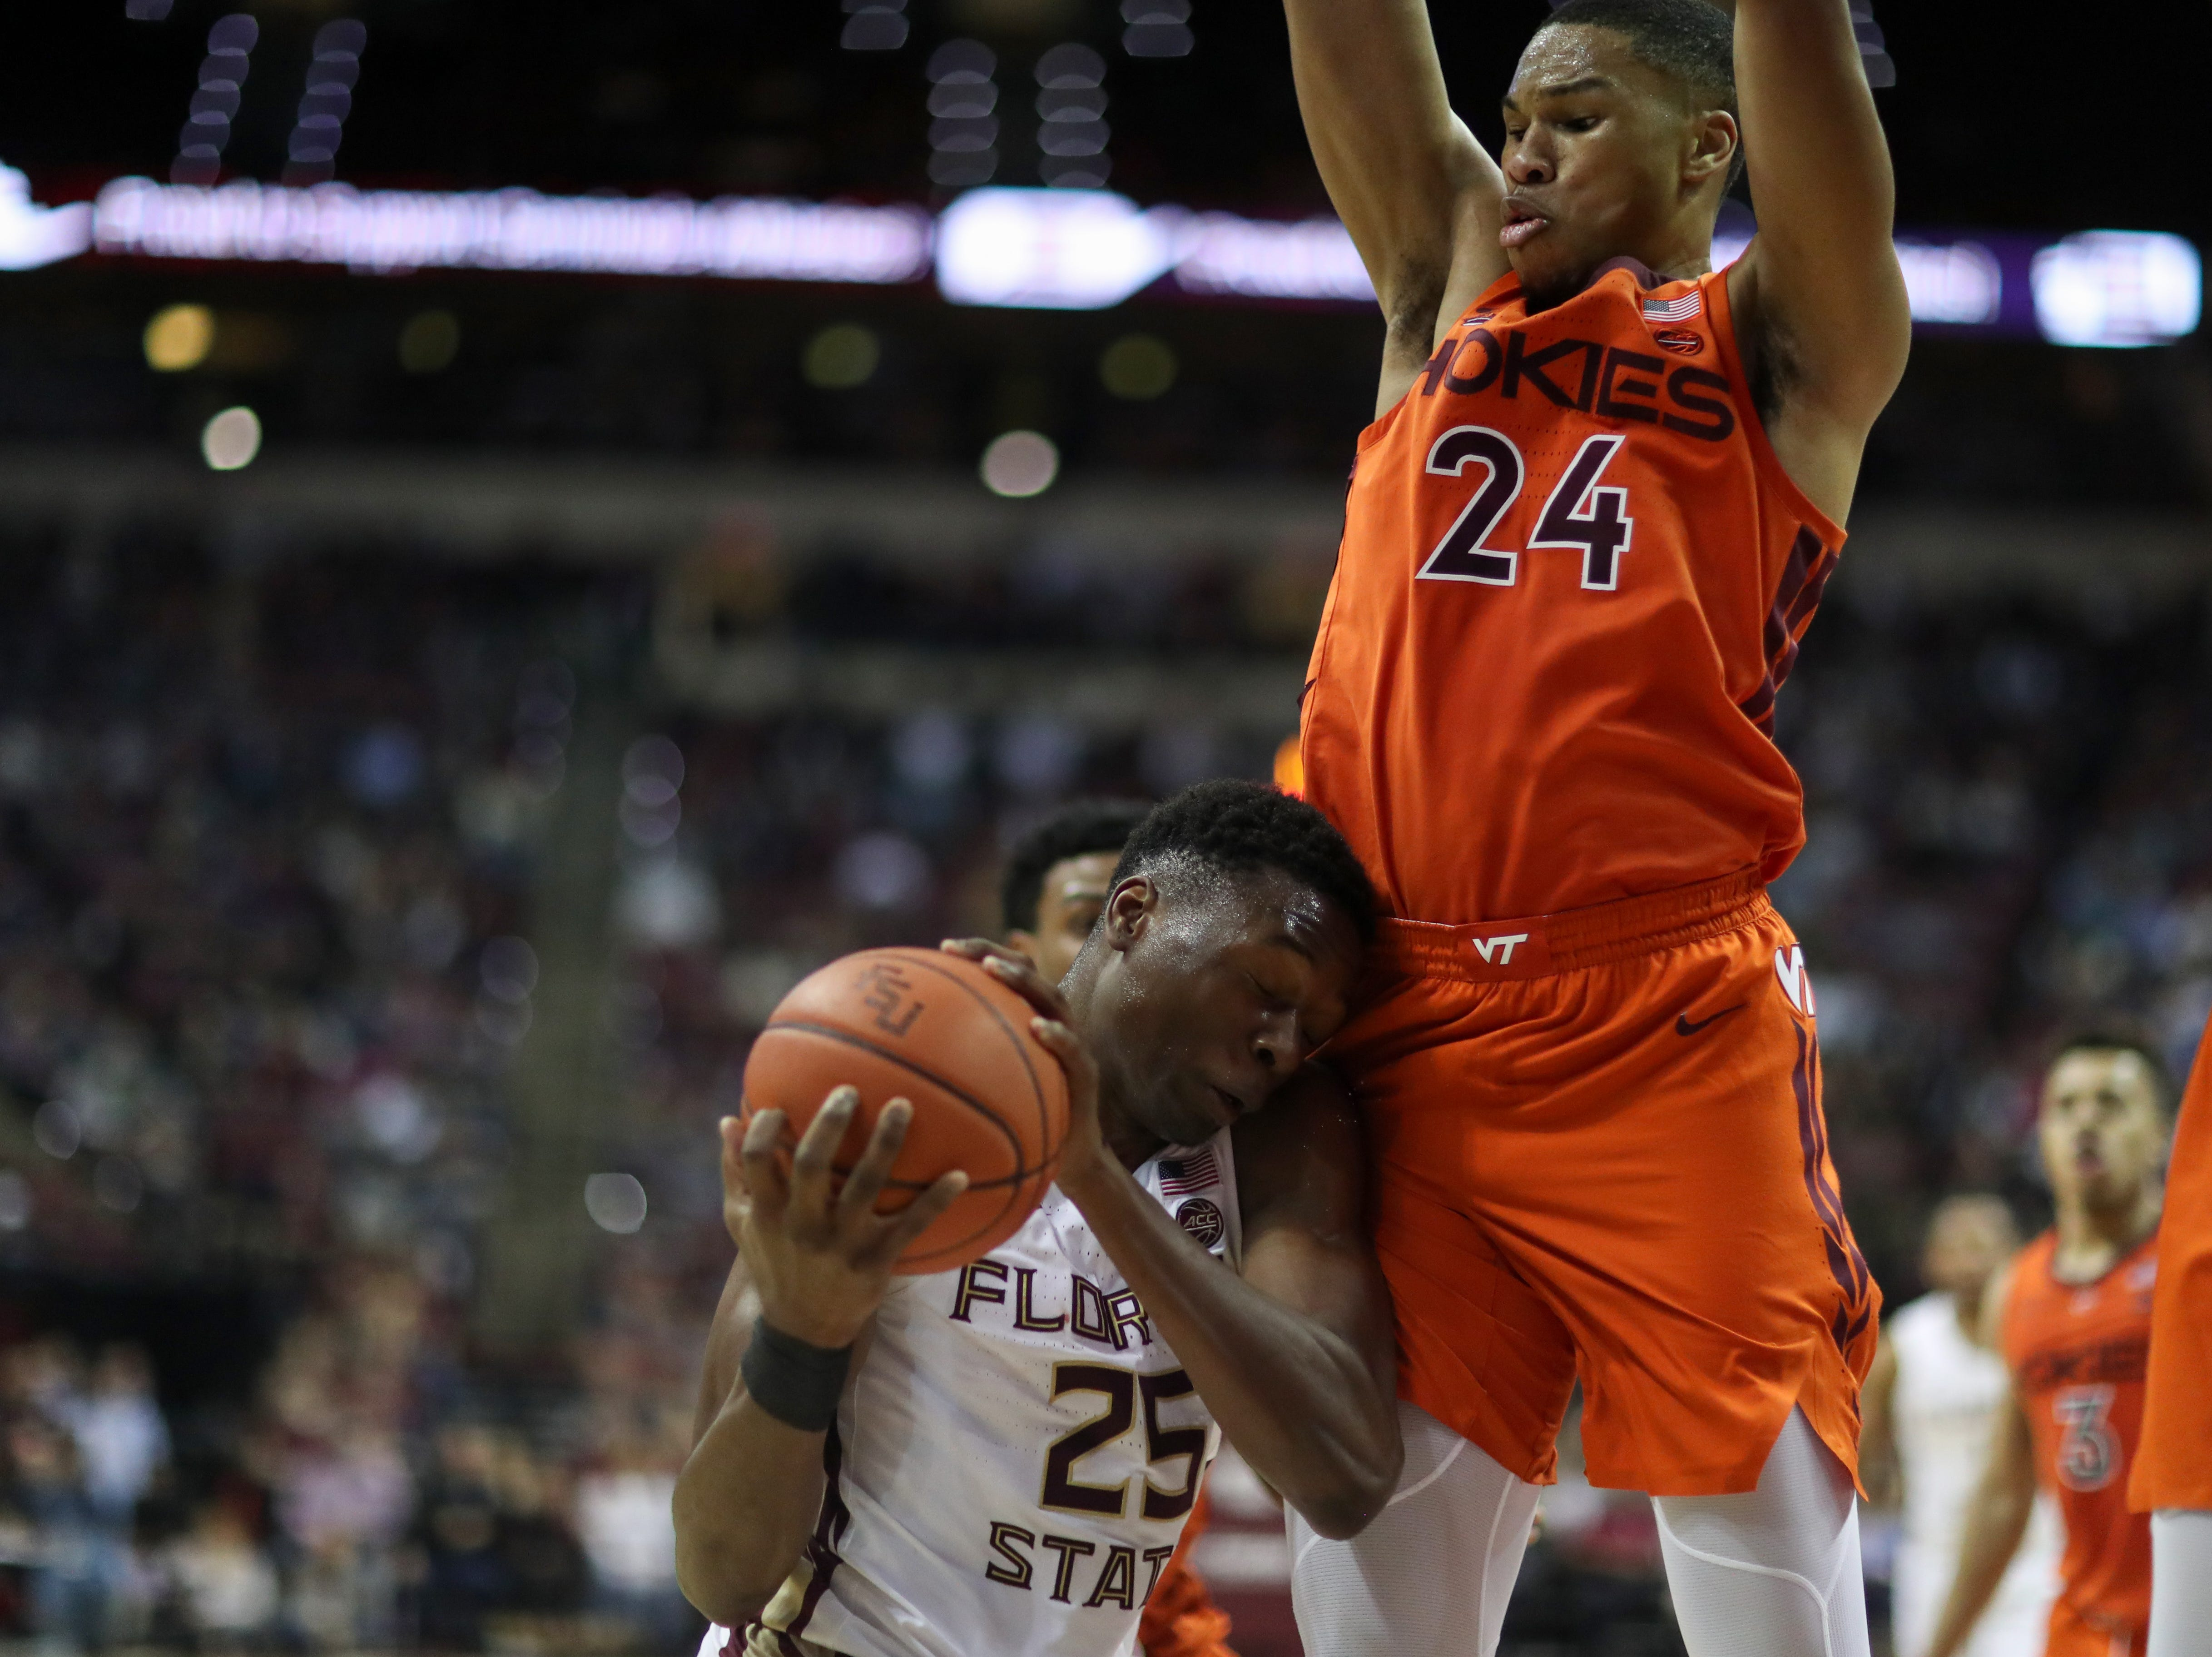 Florida State Seminoles forward Mfiondu Kabengele (25) meets the body of a defender on his way up to the hoop during a game between FSU and Virginia Tech at the Donald L. Tucker Civic Center Tuesday, March 5, 2019.